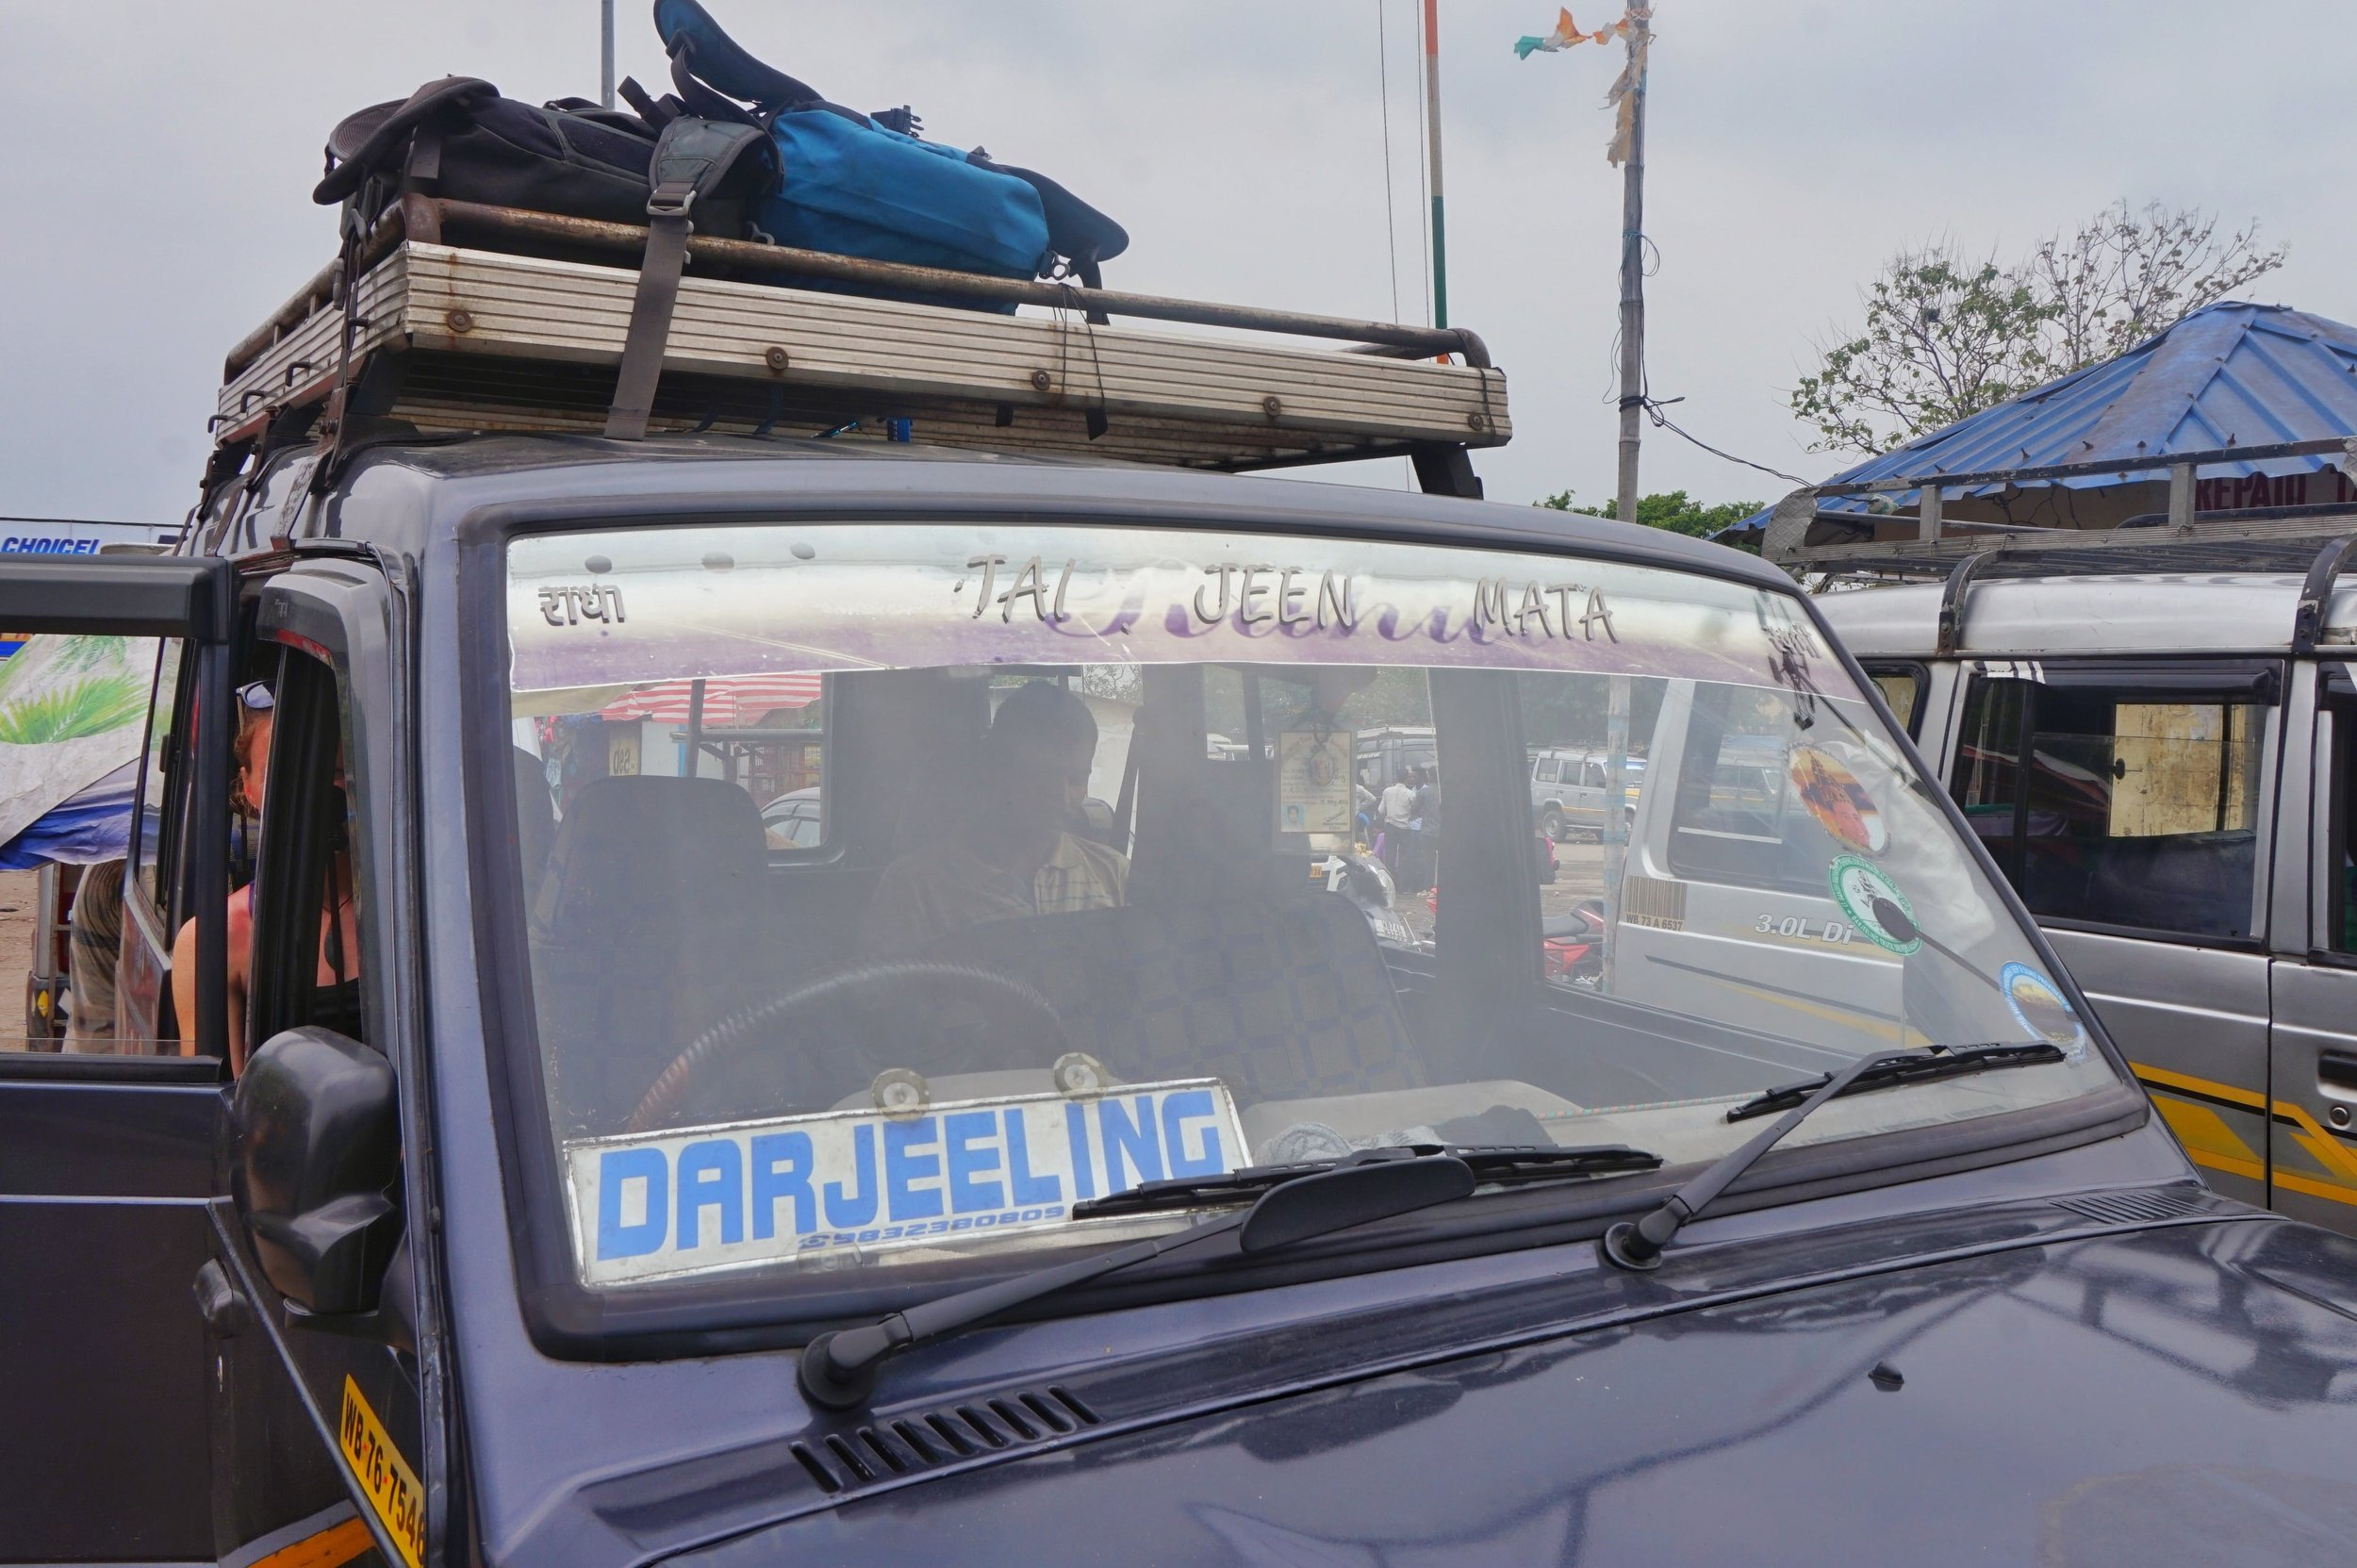 Shared jeeps will be your choice of transportation from Ilam to Darjeeling with public transport.